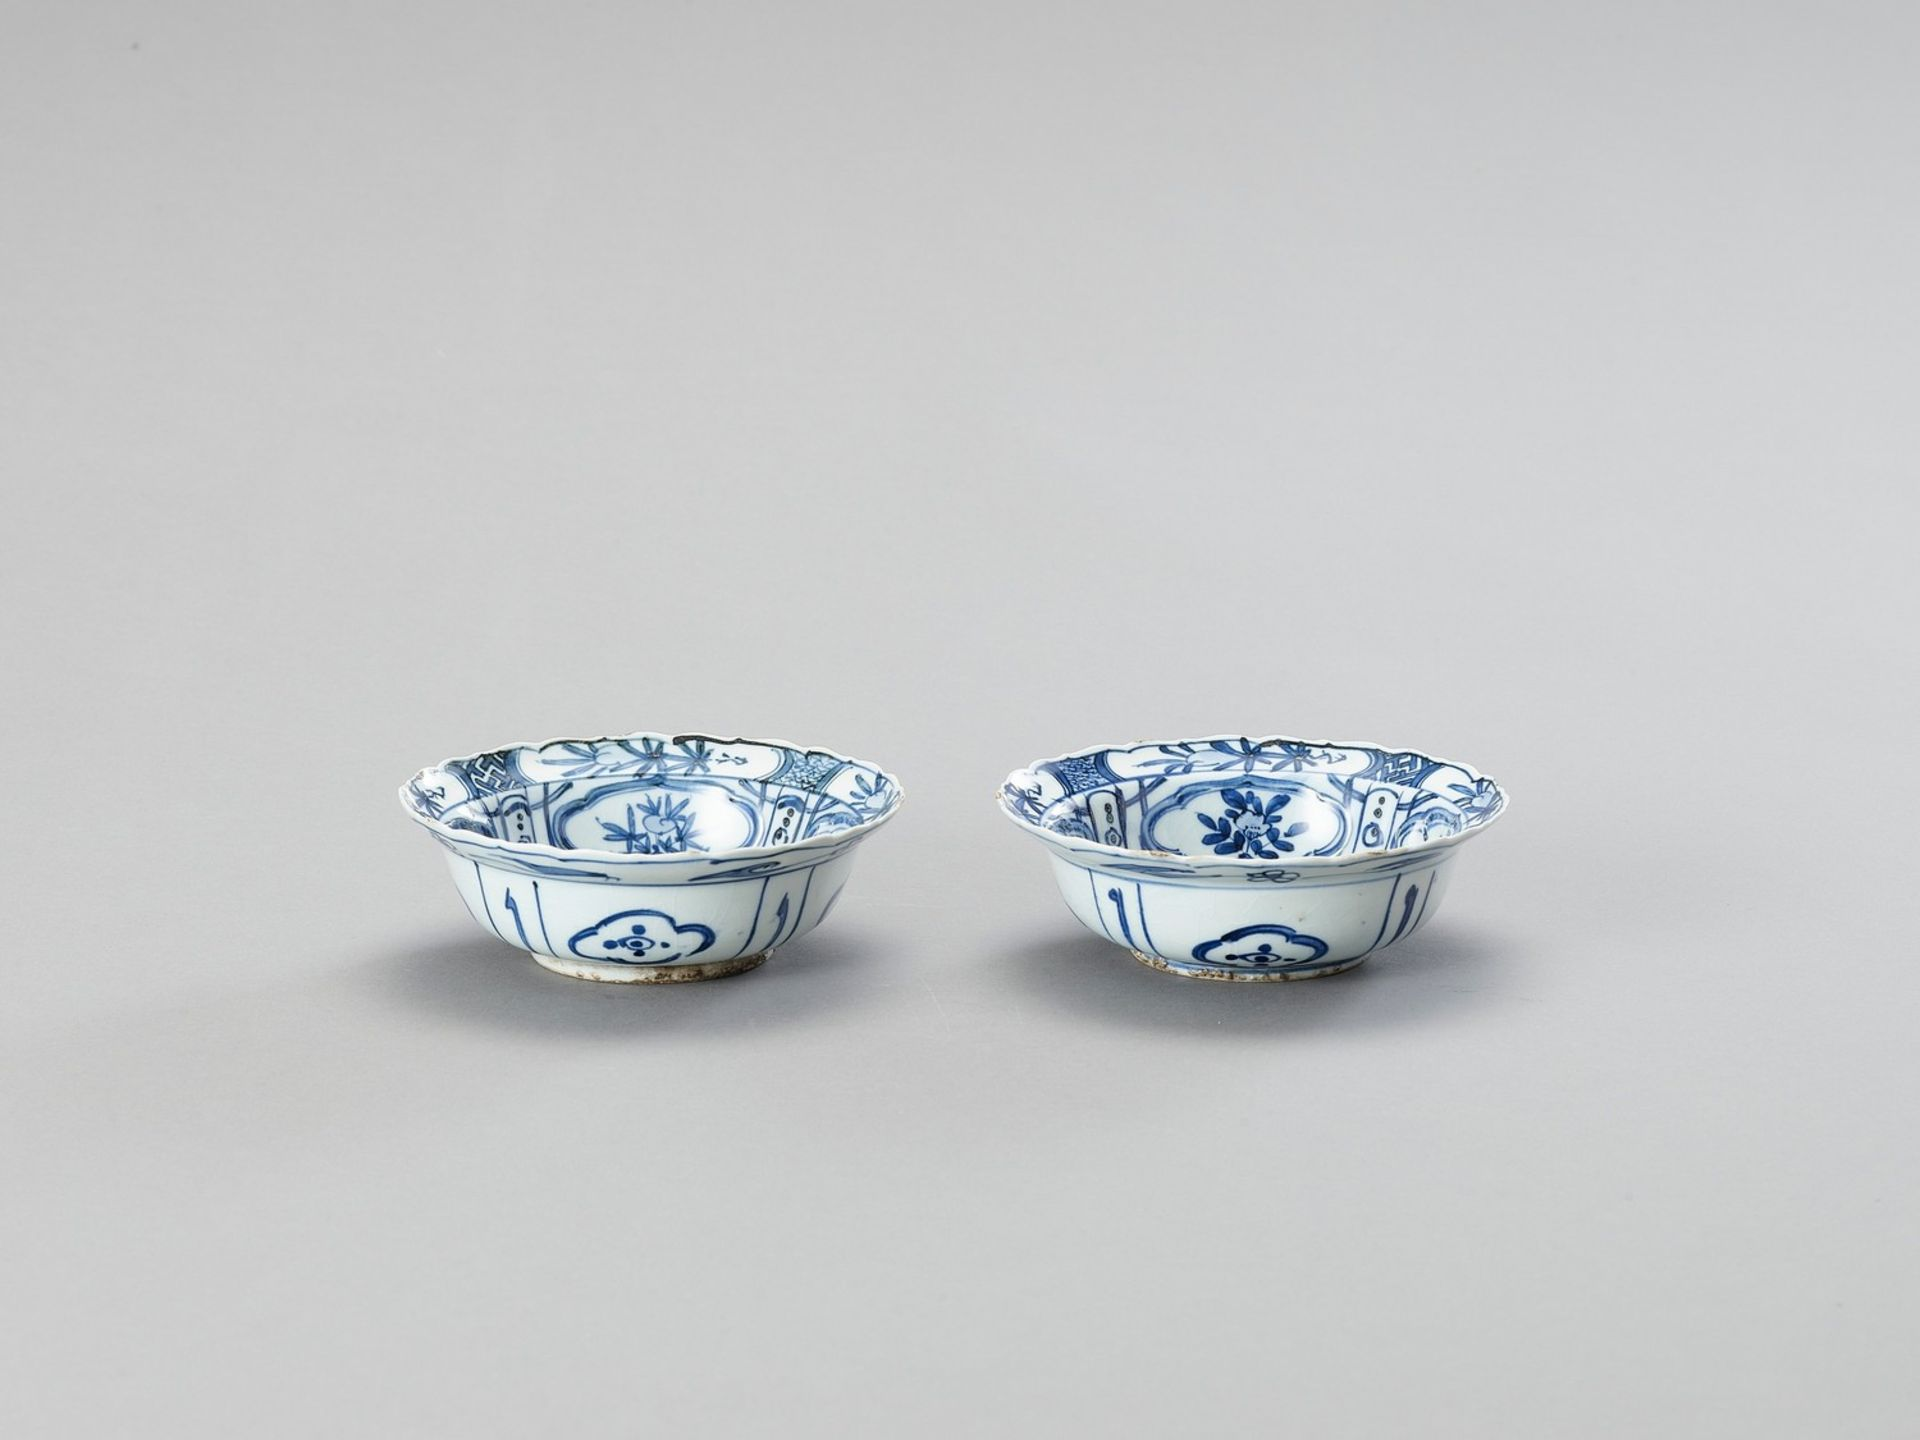 A PAIR OF BLUE AND WHITE 'KRAAK' STYLE PORCELAIN BOWLS - Image 2 of 4